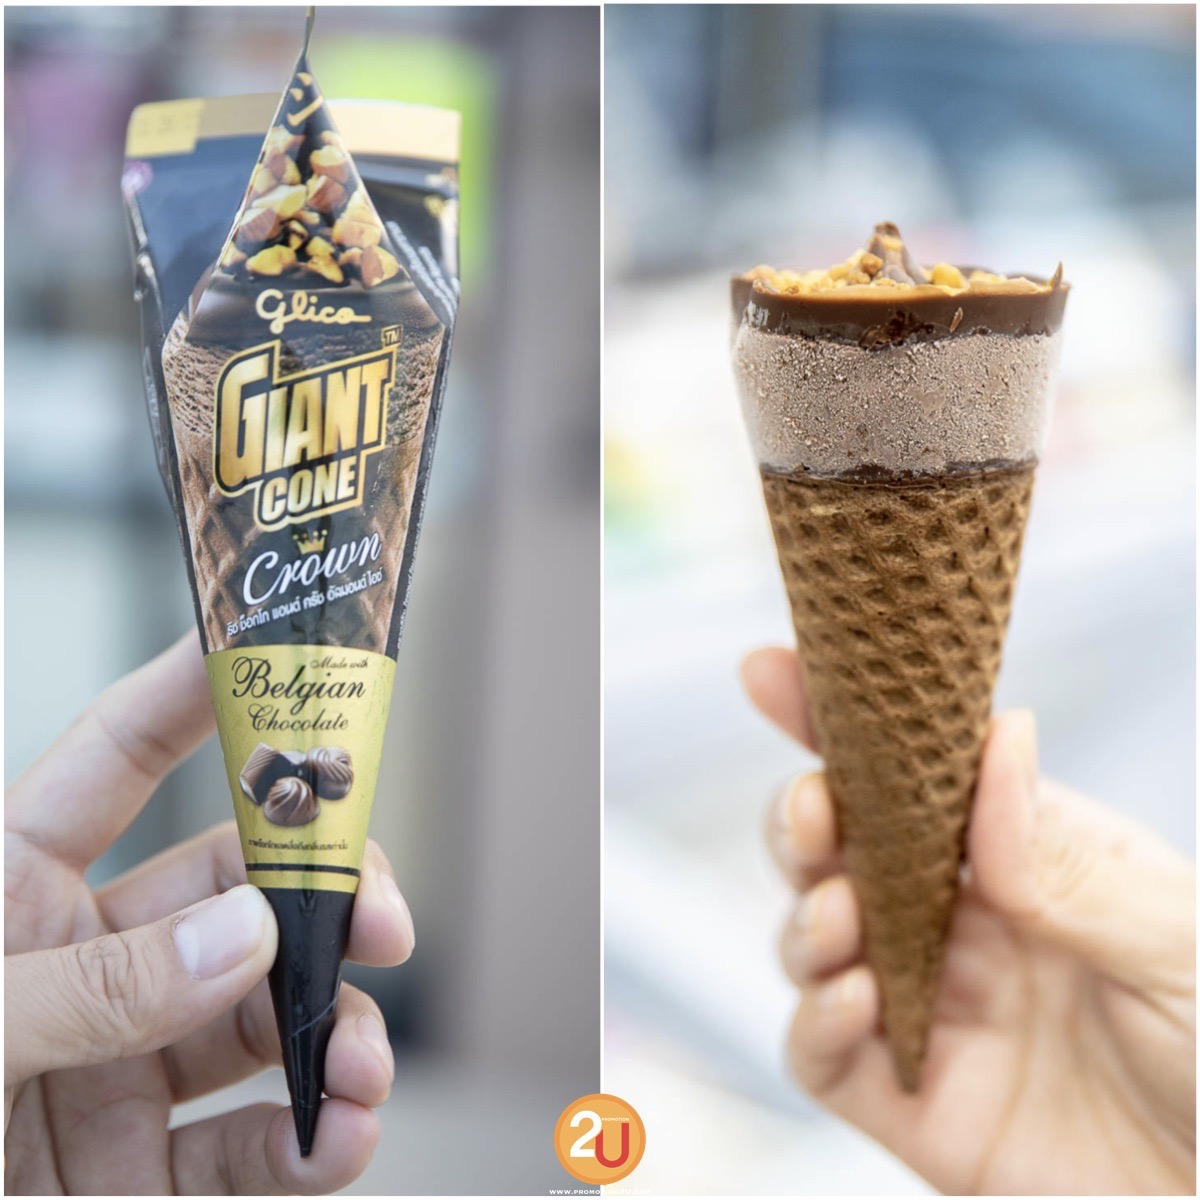 Promotion Gulico Giant Clone Crown Special Discount 30 Baht at 7 11 P02